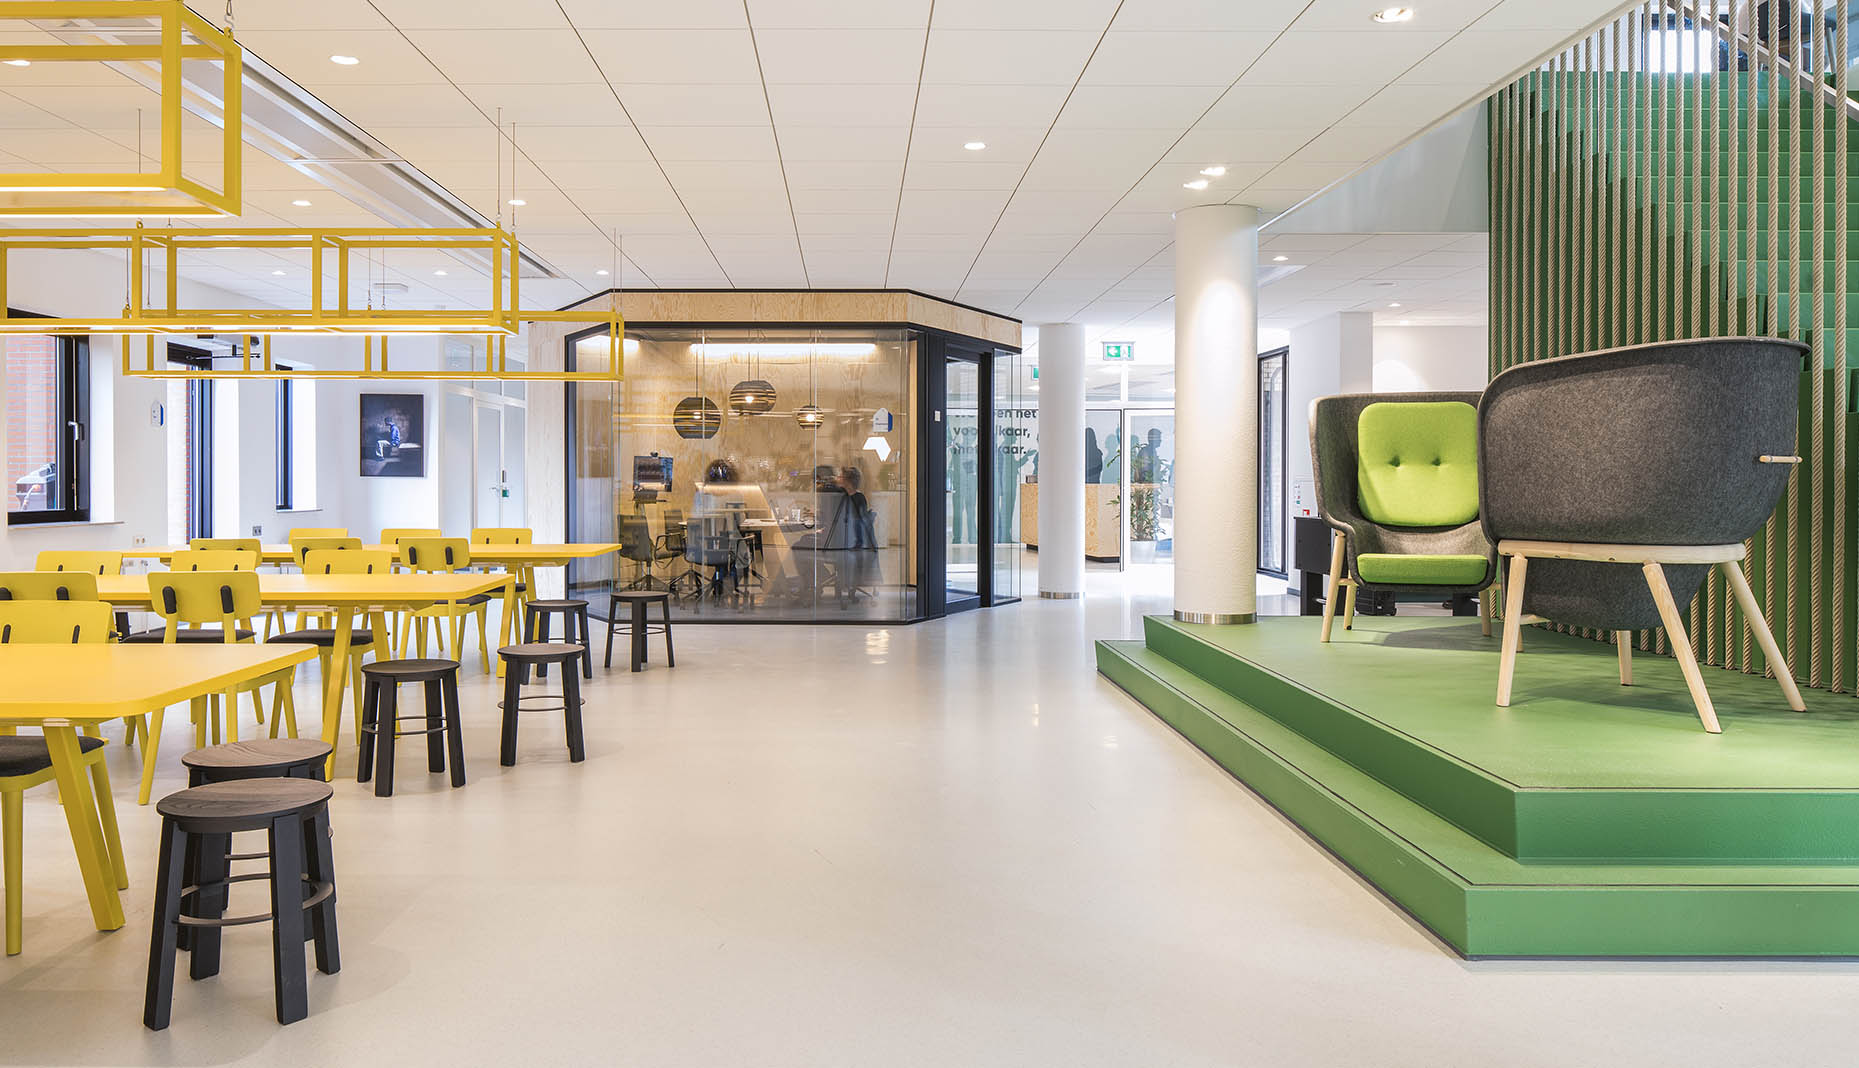 De Vorm for Office | Flexible Workplace Design- the Open Office, Cubicle and Beyond